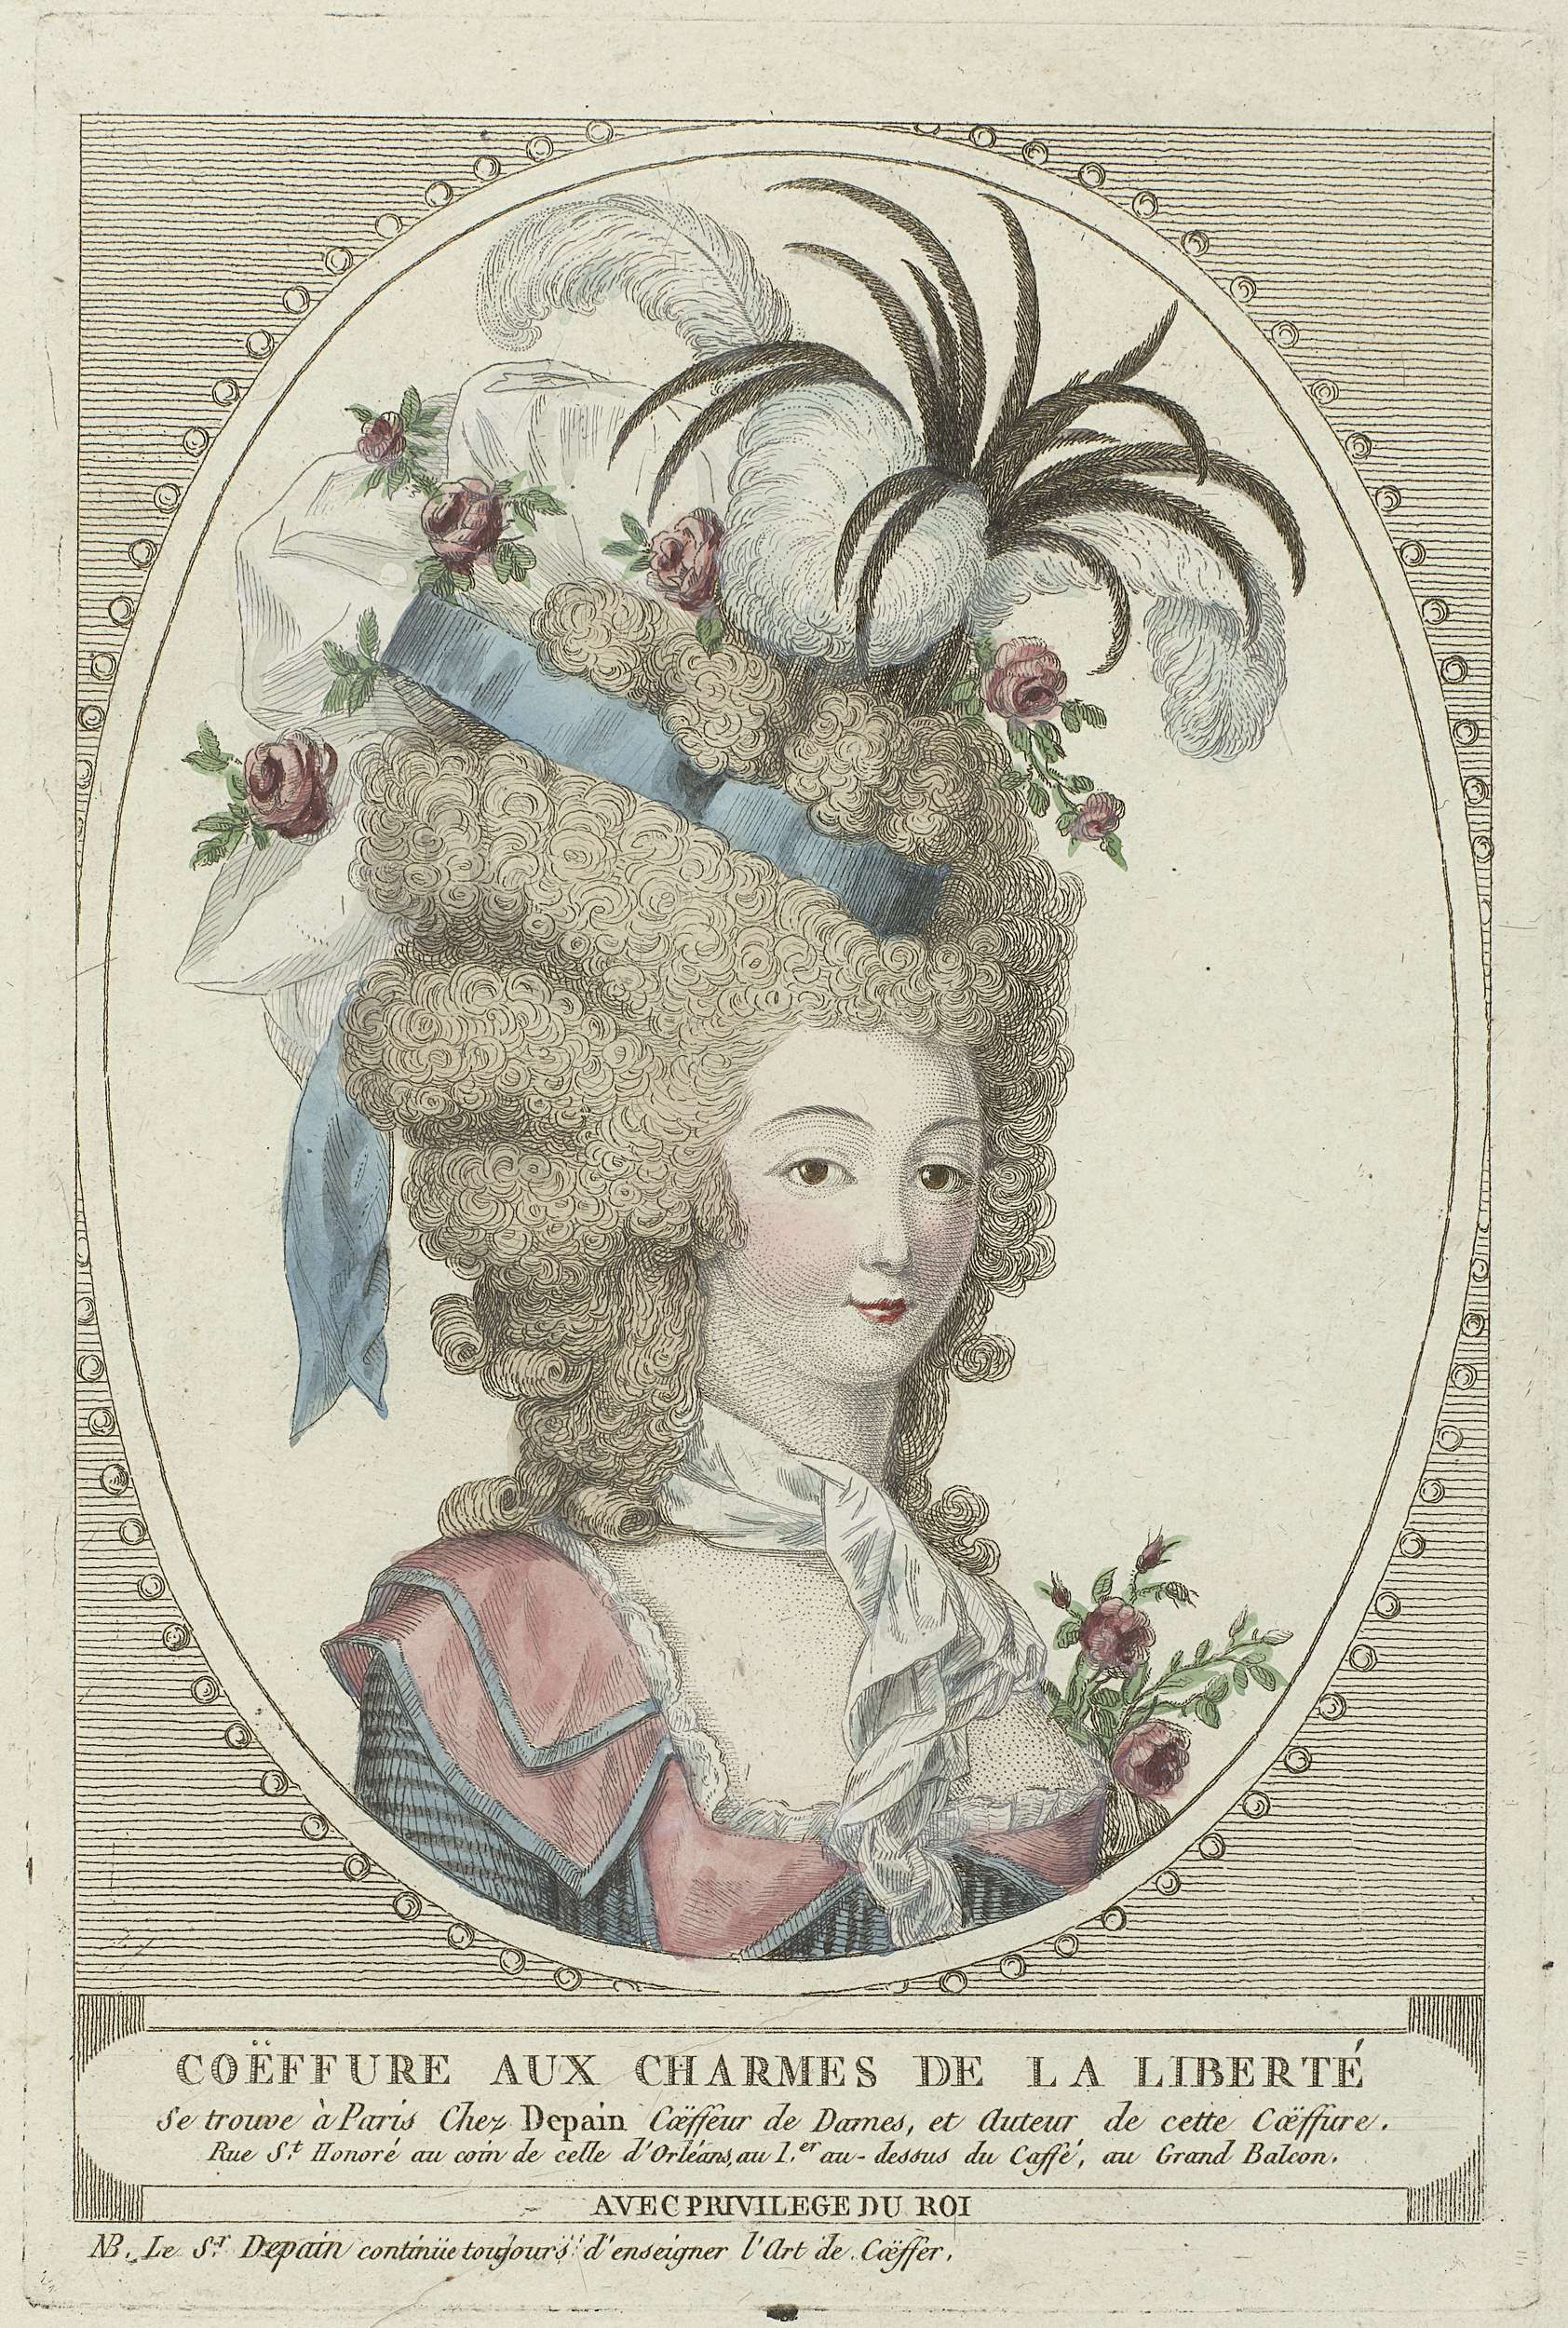 She wears a dress with a double collar; a cravat, and a hat with ribbons,  feathers, roses, and springs. Etching, anonymous, c. 1790.